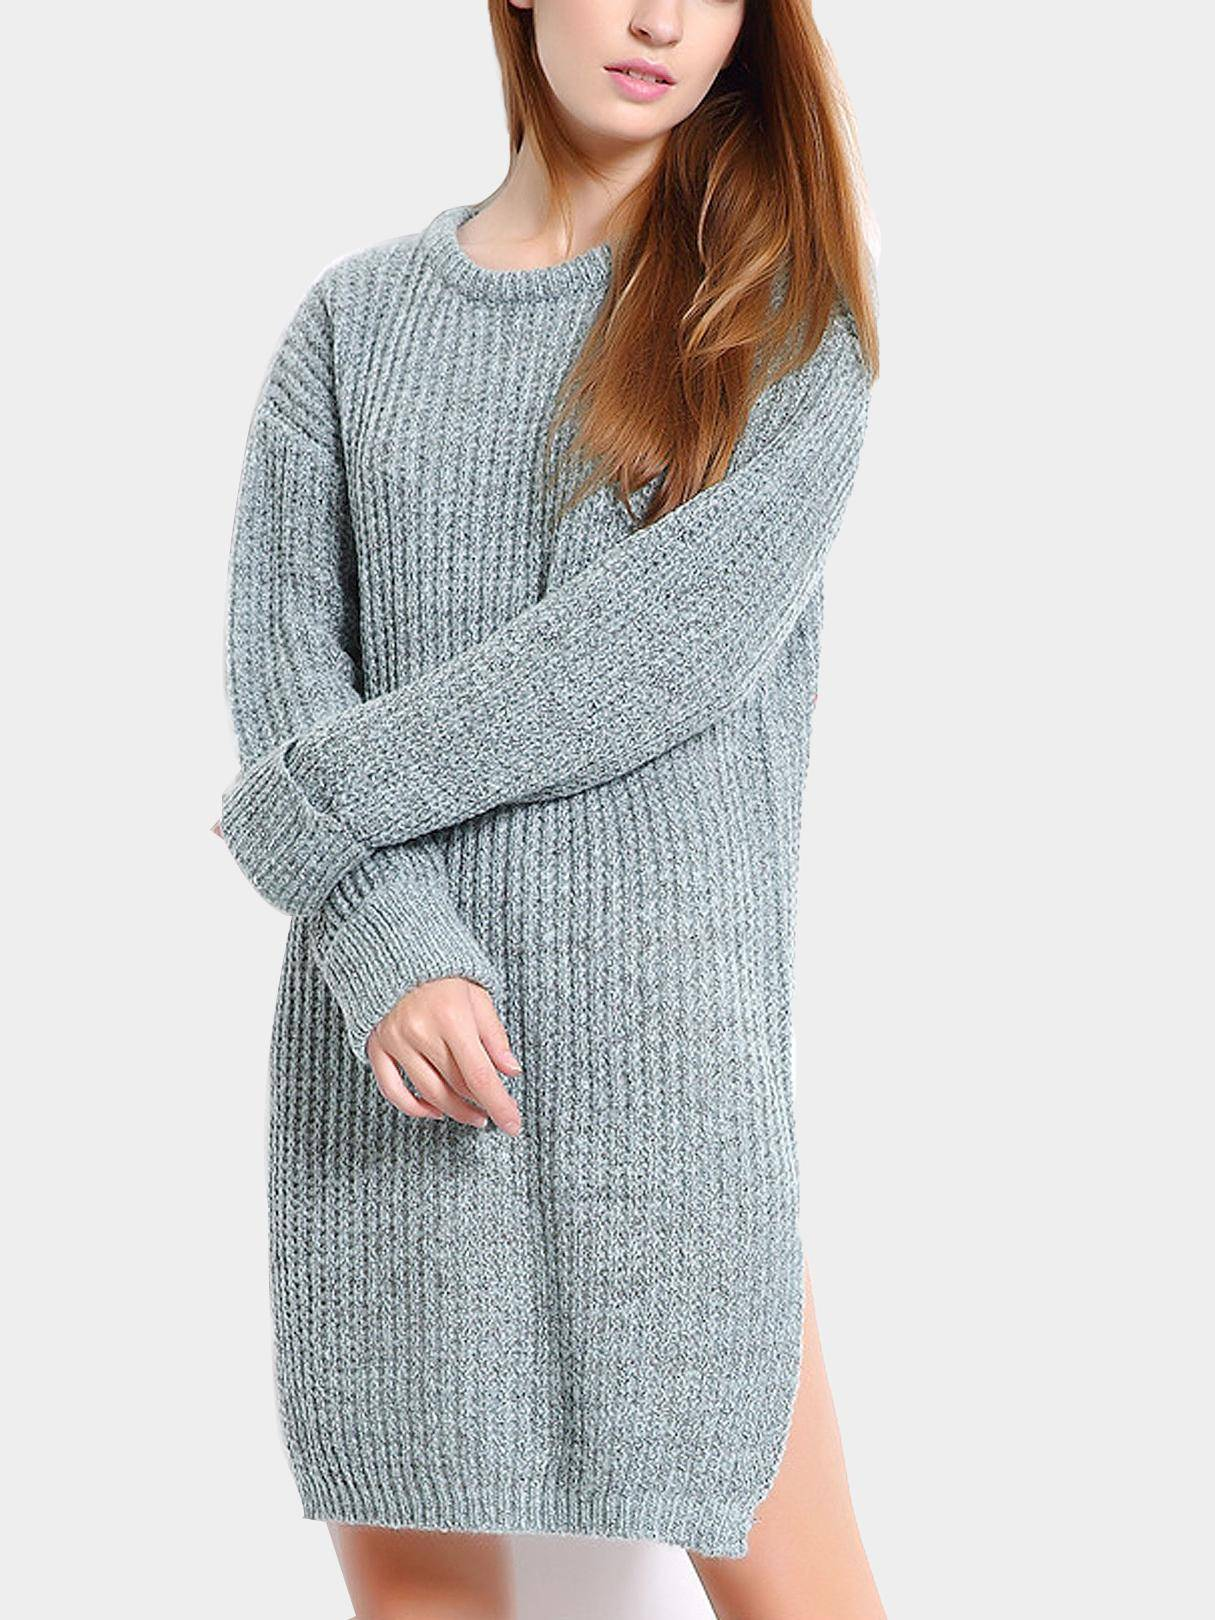 Aquamarine Slouchy Jumper Dress with Side Slits SKU312980